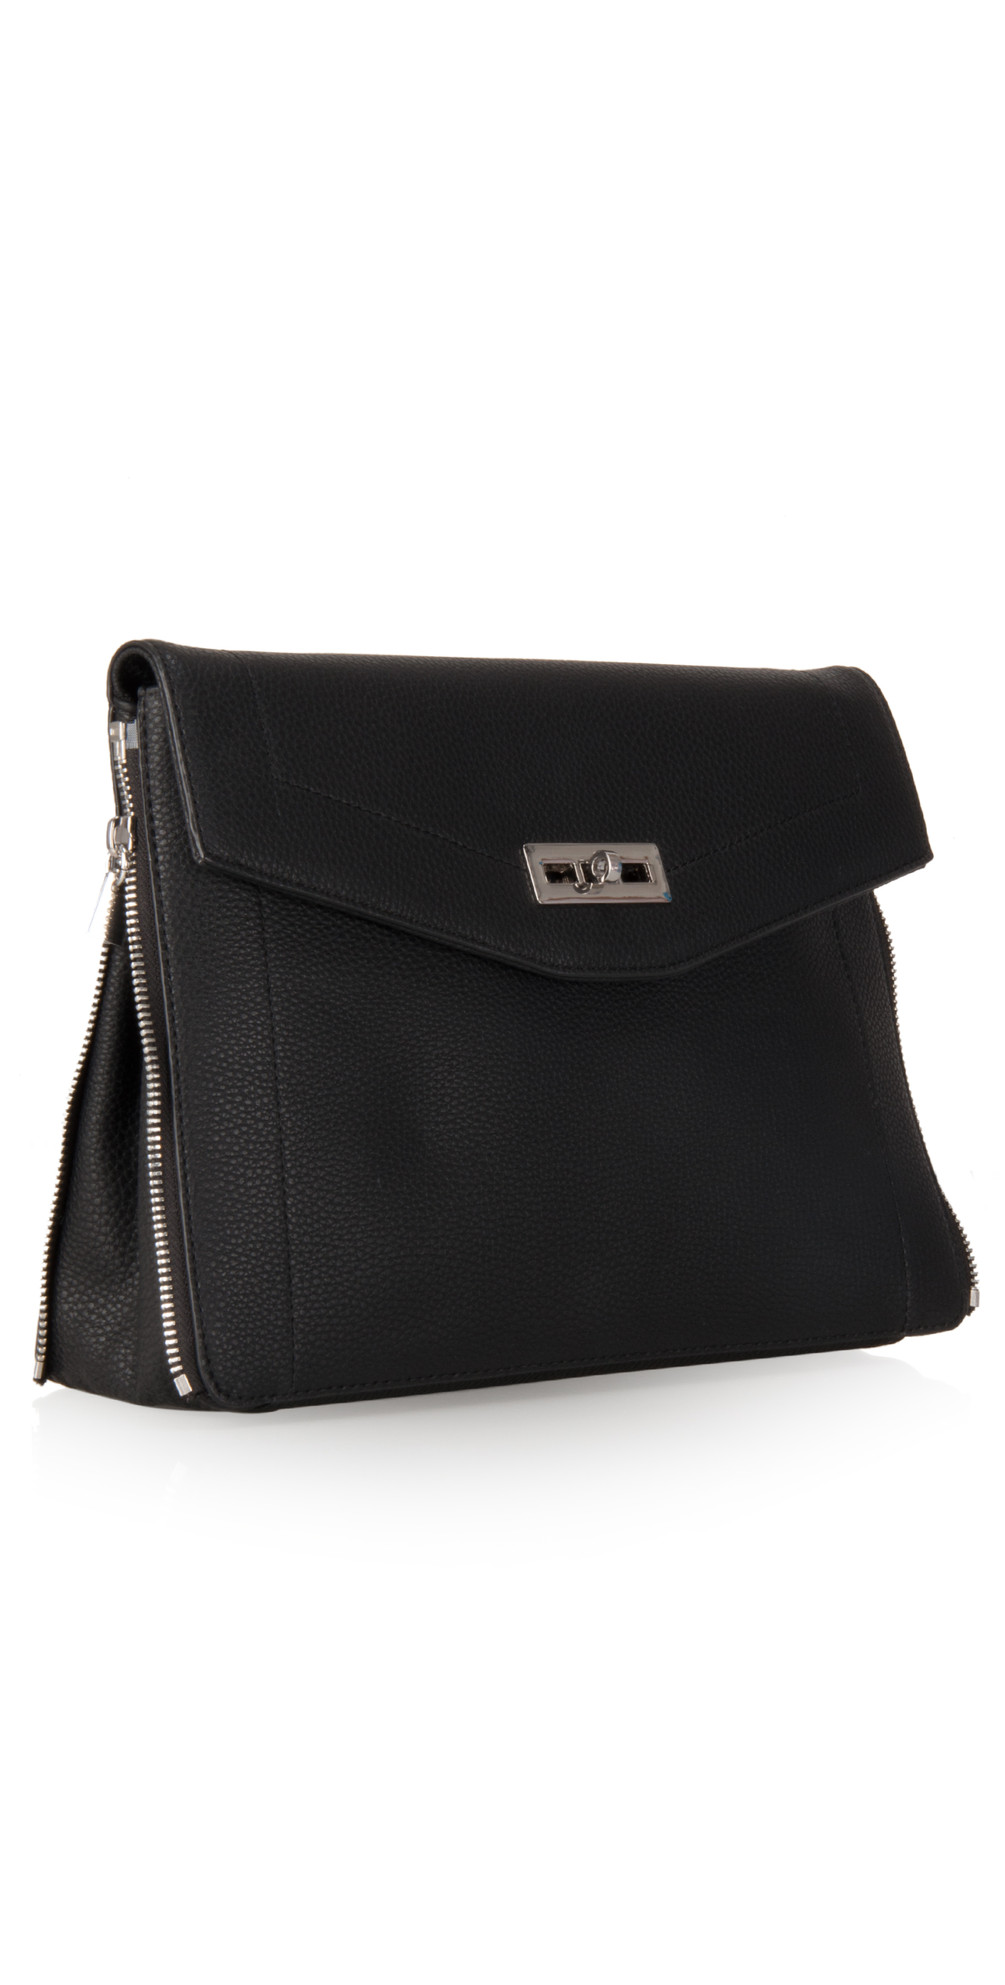 Hillary Clutch Bag main image